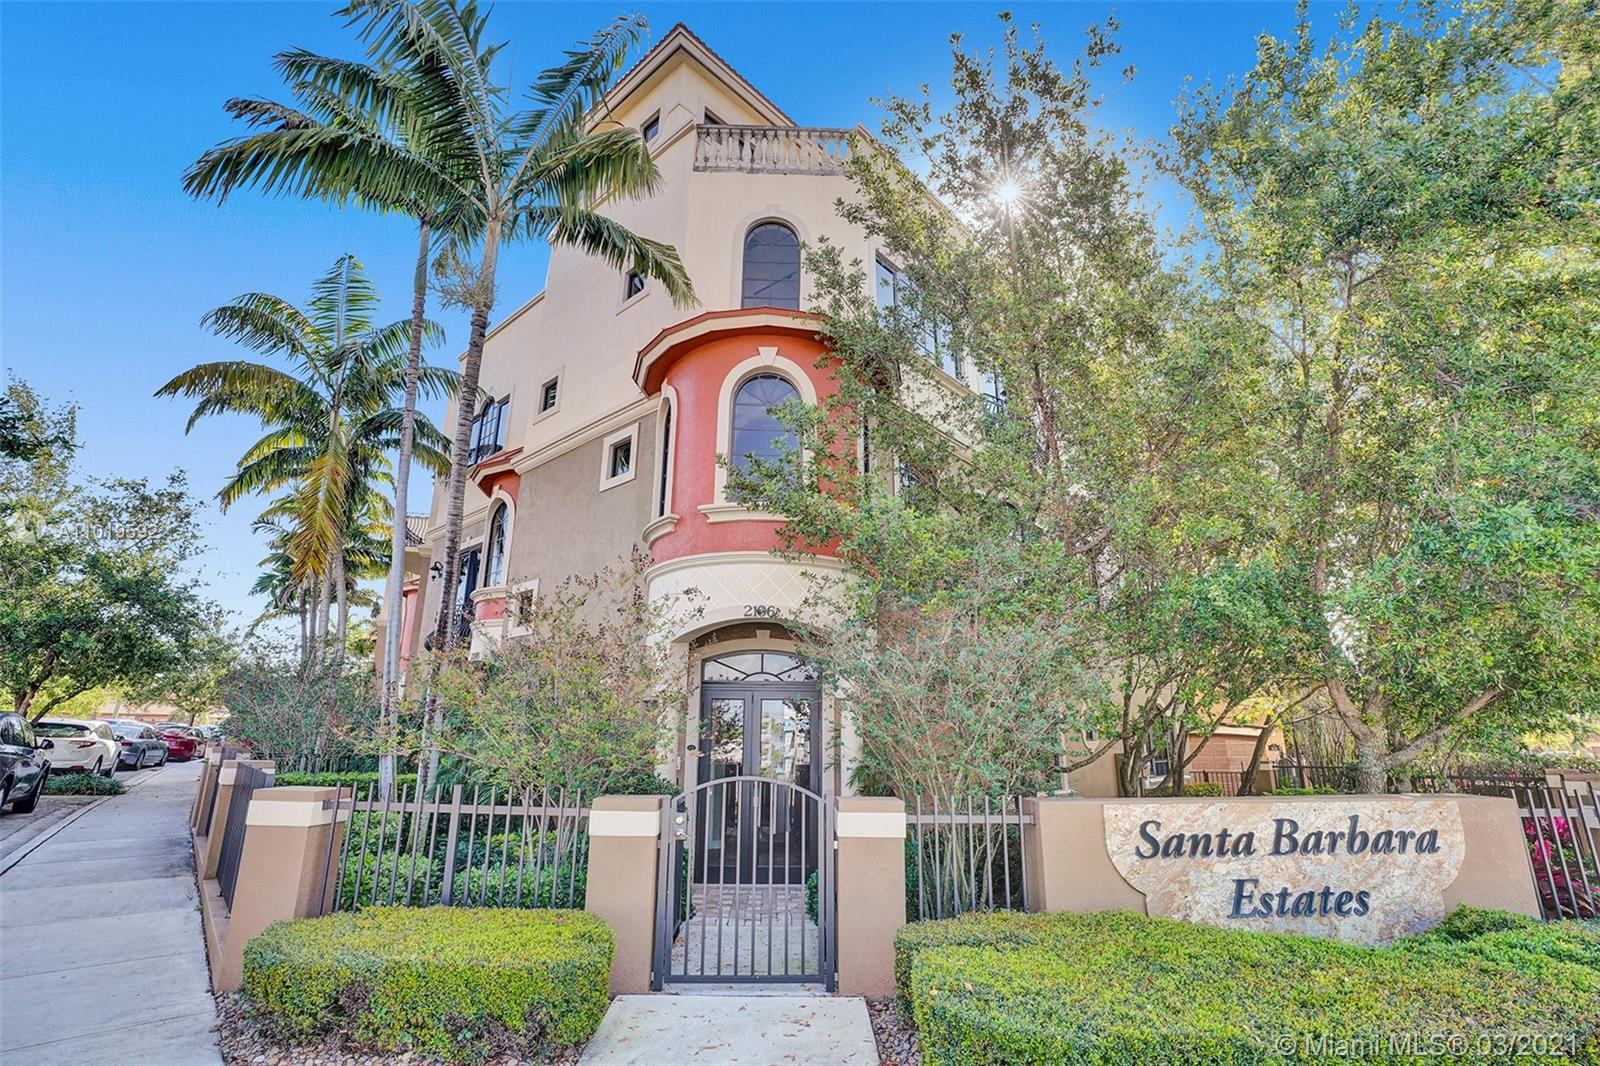 YOUR NEW HOME ON LAKE SANTA BARBARA, A BOATER'S DREAM WITH YOUR OWN PRIVATE DOCK, JUST FIFTEEN MINUTES BY BOAT TO THE HILLSBORO INLET. THIS HOME HAS JUST UNDERGONE A COMPLETE REMODEL TO DESIGNER SPECS; IT BOASTS A COMMERCIAL GORMET CHEFS KITCHEN WITH A BLUE AGA RANGE, BUILT-IN GE MONOGRAM FRIDGE, BOSCH DW & VIKING MICRO. THE MAIN AREAS HAVE WOOD FLOORING AND GENEROUS CROWN MOLDING, FIREPLACE; THE BATHROOMS HAVE PORCELAIN TILE, A SOAKING TUB AND RAIN HEAD SHOWERS; THE BREATH TAKING ROOF-TOP ENTERTAINMENT AREA HAS PORCELAIN TILE & TURF, A FIRE PIT, BUILT-IN GRILLING AREA AND HOOK-UPS FOR A HOT TUB & TV - A PERFECT AREA TO ENJOY WITH FRIENDS AND FAMILY! ALL FLOORS CAN BE ACCESSED VIA ELEVATOR, THERE IS A 2-CAR GARAGE, GATED PHONE ENTRY. THIS IS THE MOST LUXURIOUS VALUE ON THE WATER!